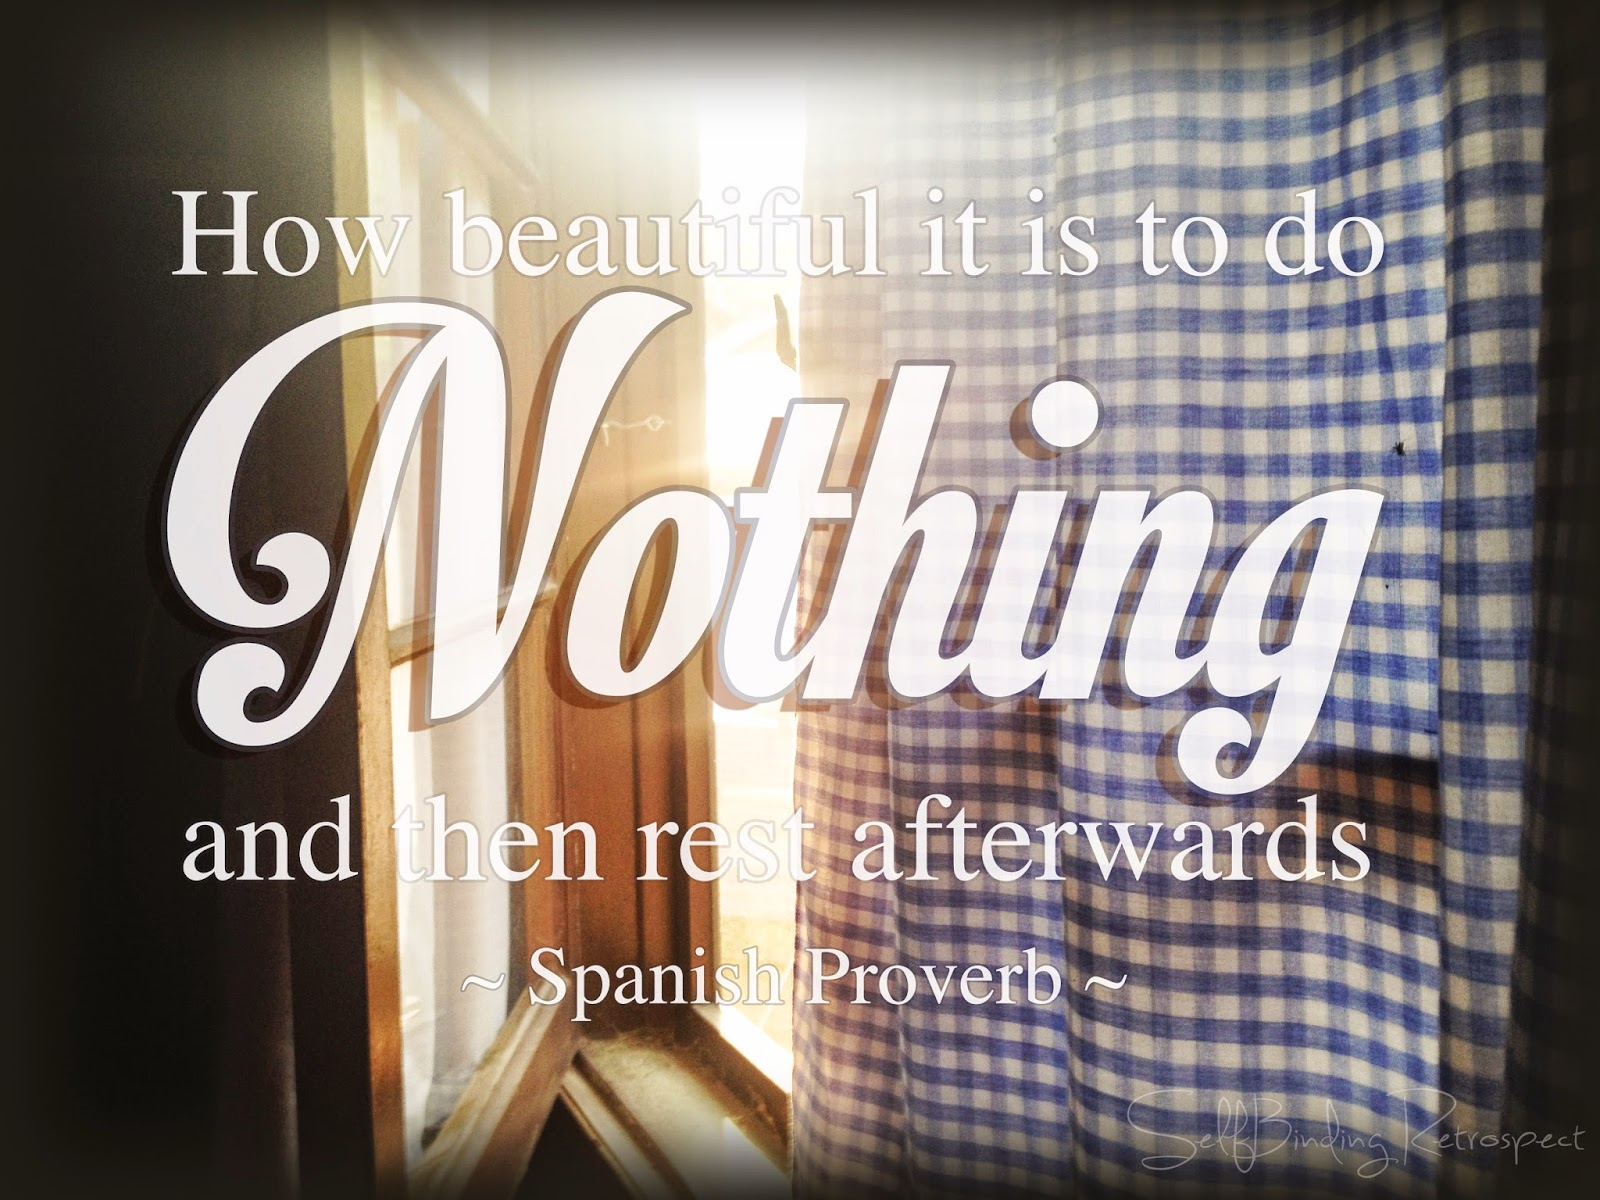 How beautiful it is to do nothing and then rest afterwards - Spanish Proverb on SelfBinding Retrospect by Alanna Rusnak